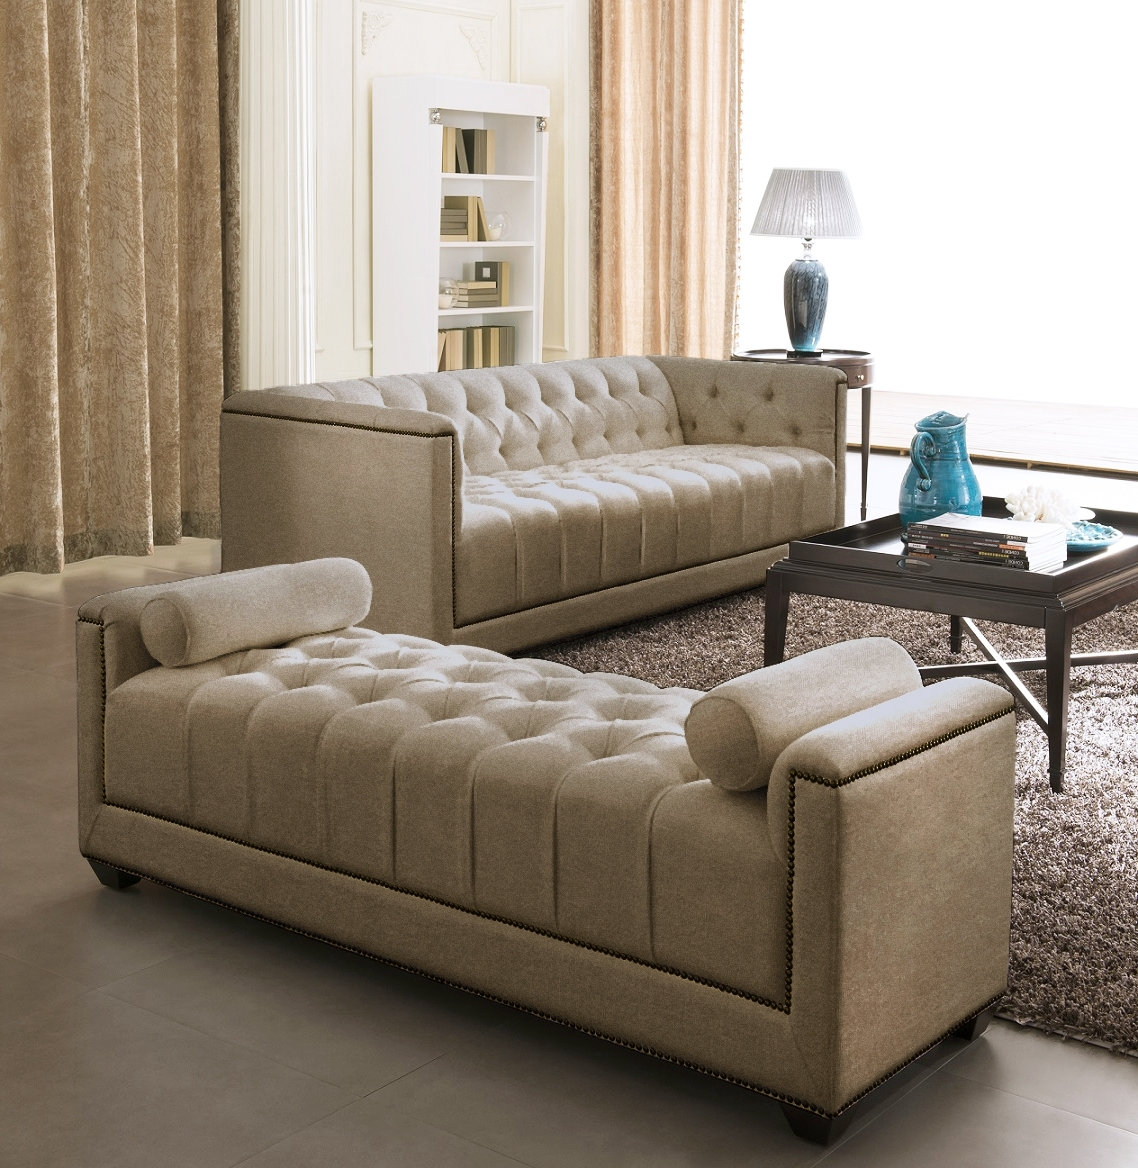 Favorite Contemporary Sofas And Chairs Pertaining To Furniture: Inspiring Living Room Design With Contemporary Sofas (View 19 of 20)